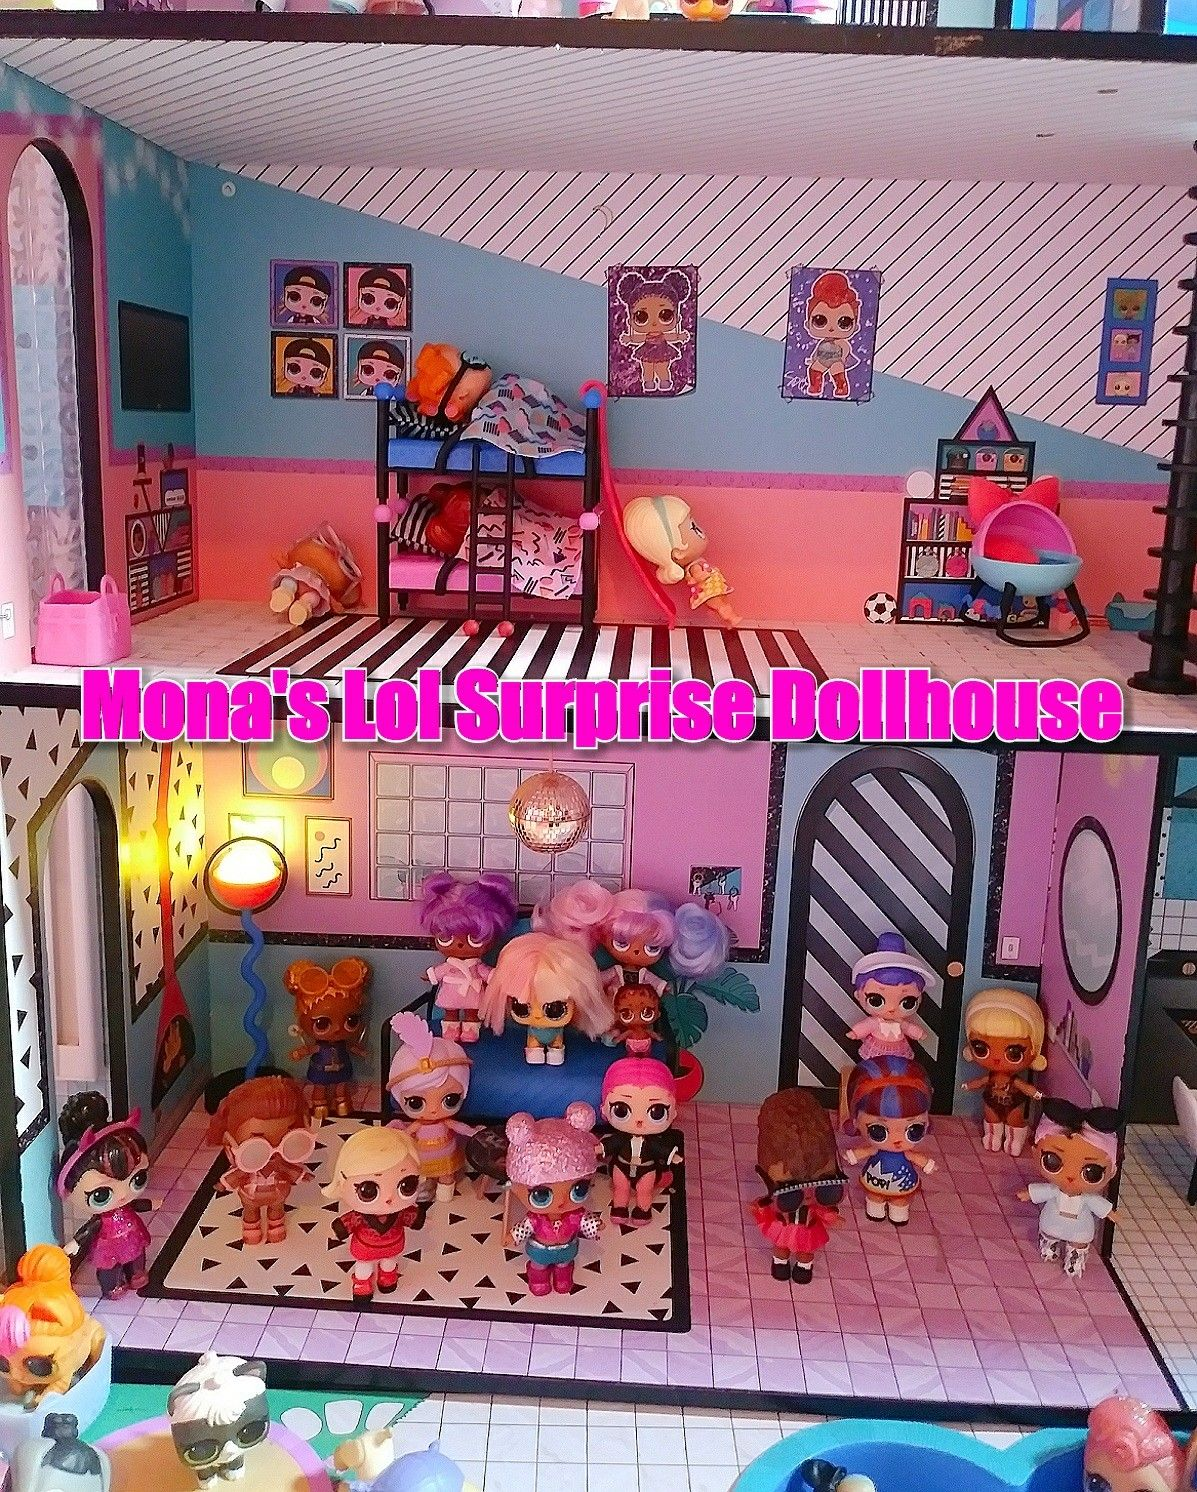 My Daughter S Lol Surprise Dollhouse With Some Of Her New Lol Surprise Under Wraps Lol Surprise Bigge Designer Brands Fashion To My Daughter Doll House